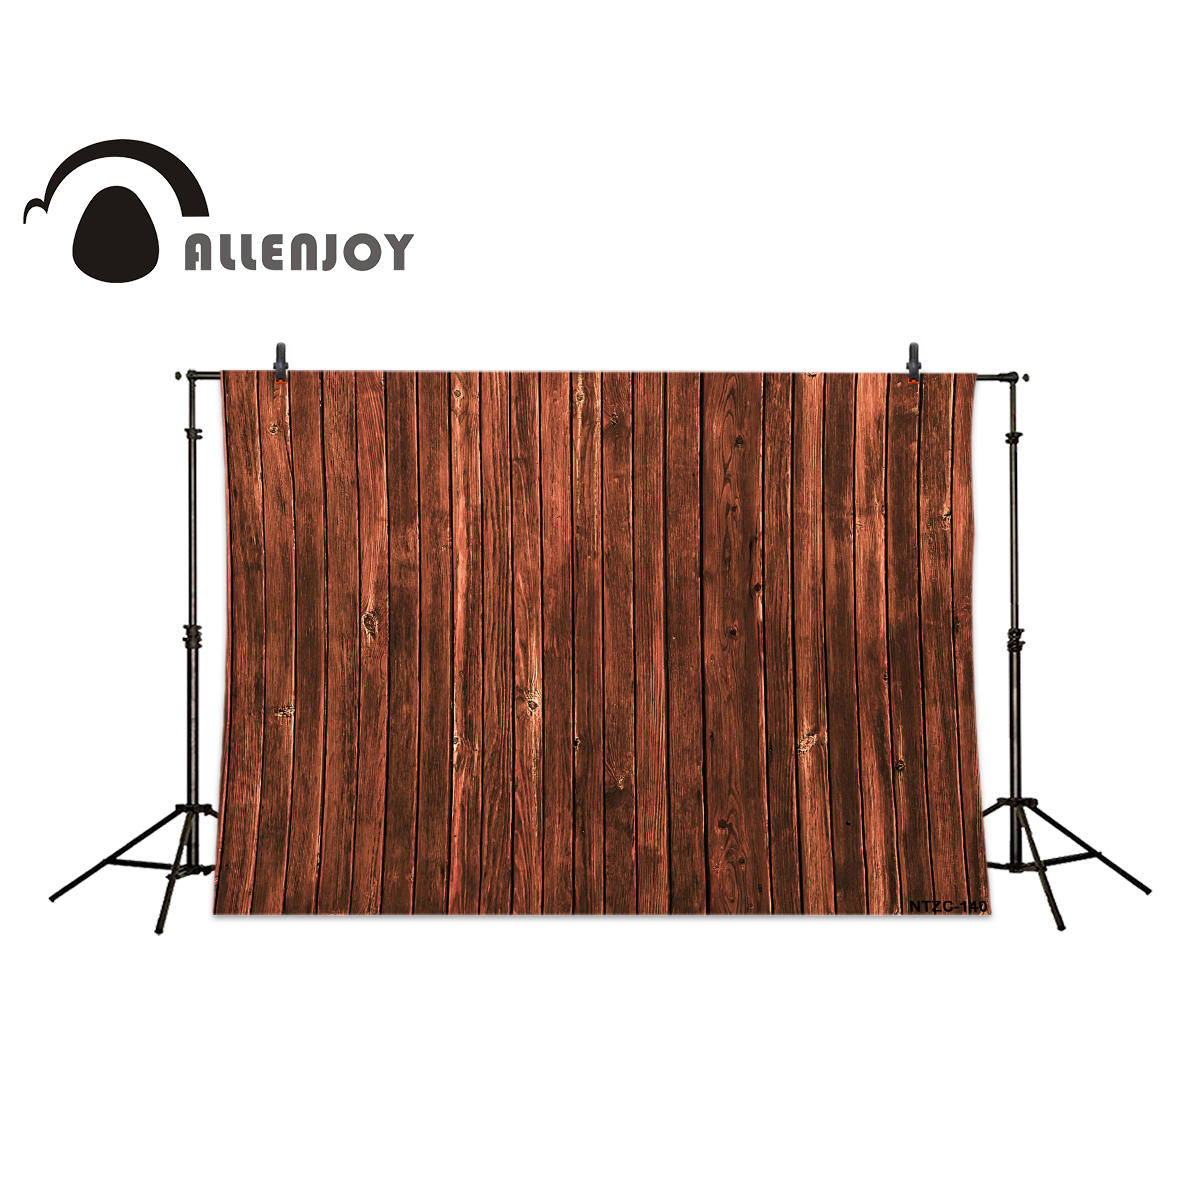 Allenjoy photography backdrops Old wooden brown wood brick wall backgrounds for photo studio photography backdrops wood grain adhesion wood brick wall backgrounds for photo studio